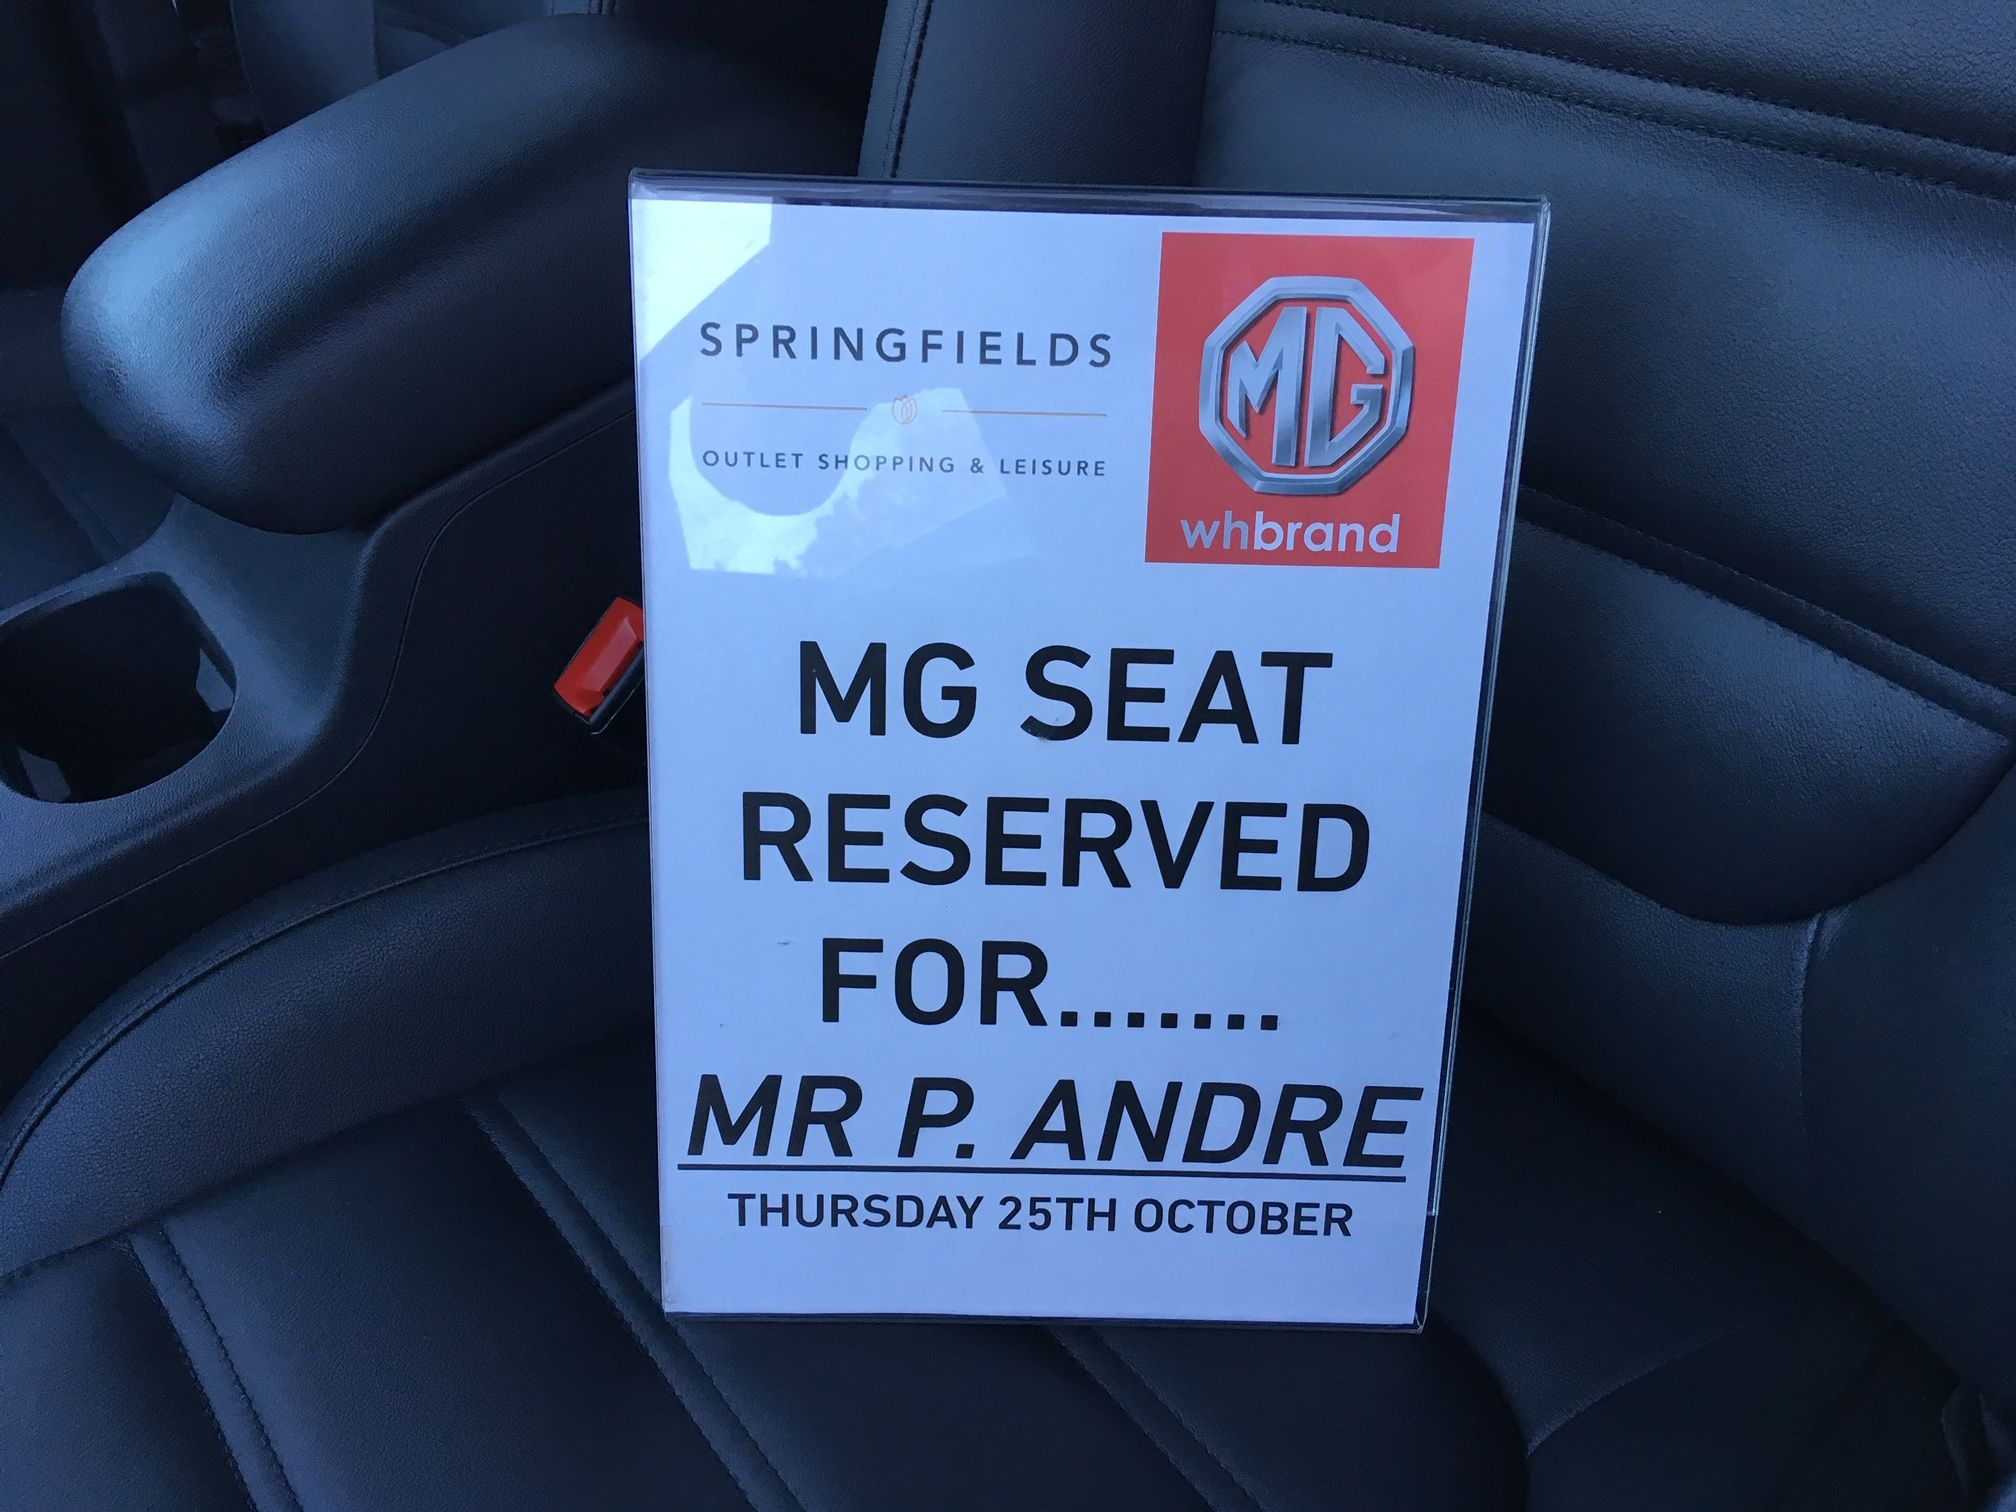 MG Seat Reserved For Mr P Andre!